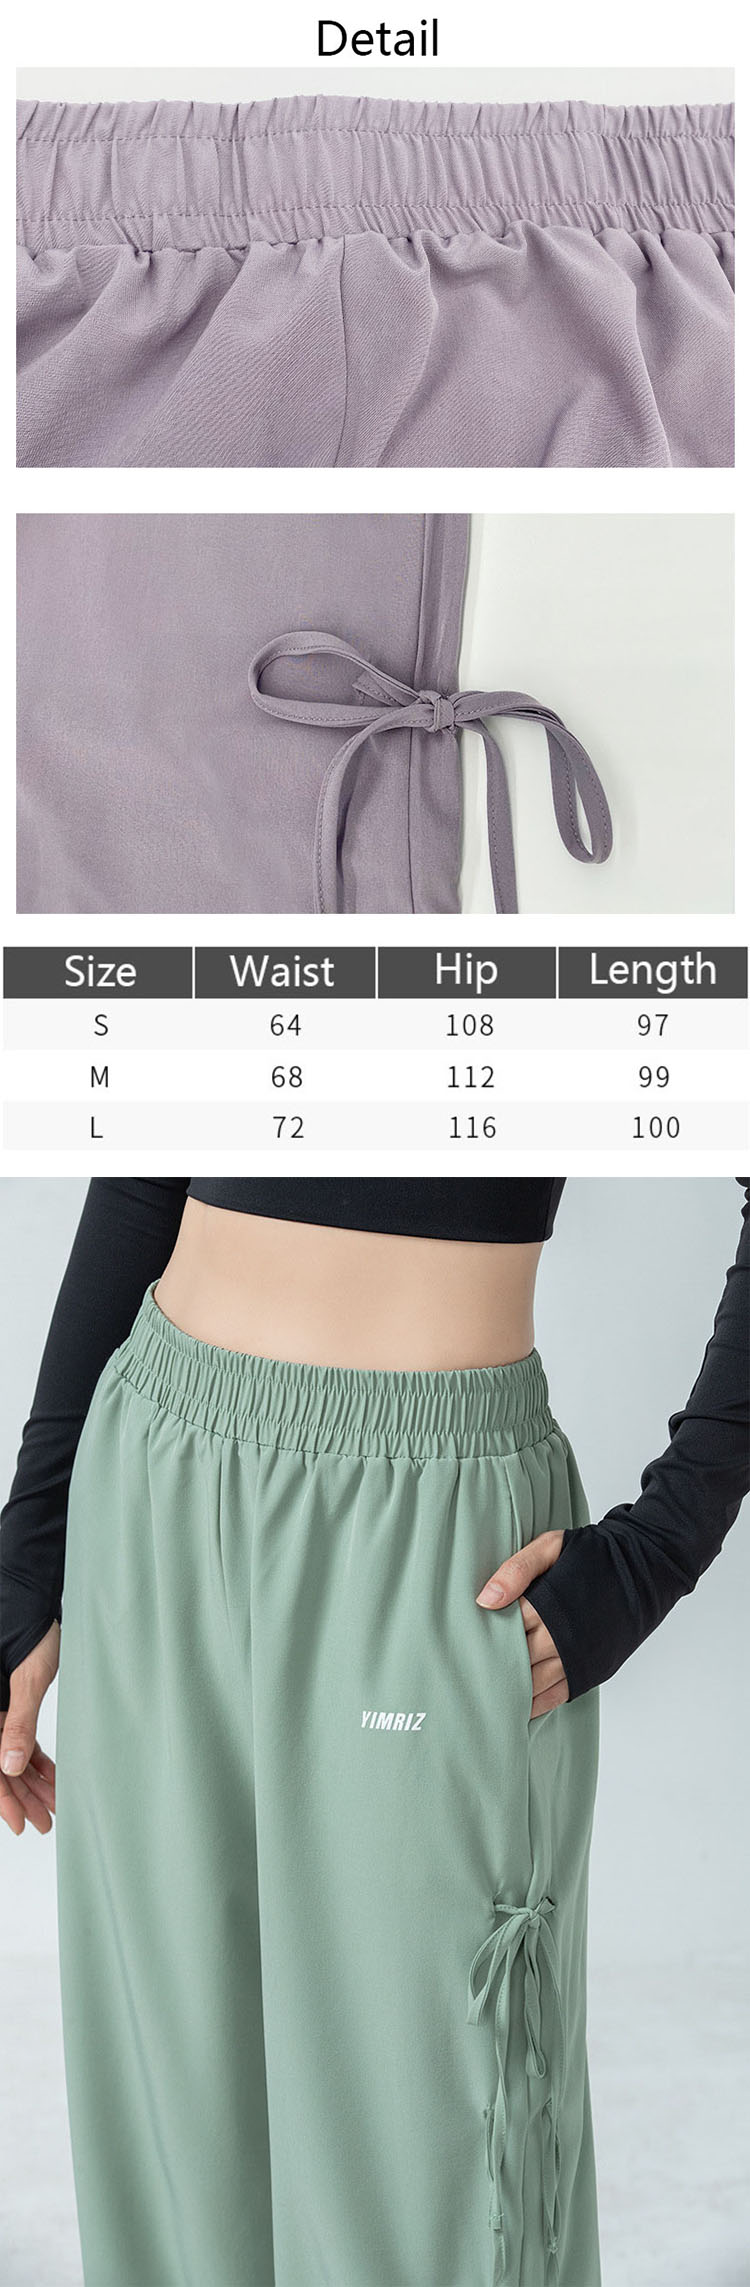 Easily hide the fat on the abdomen and show the waist curve.